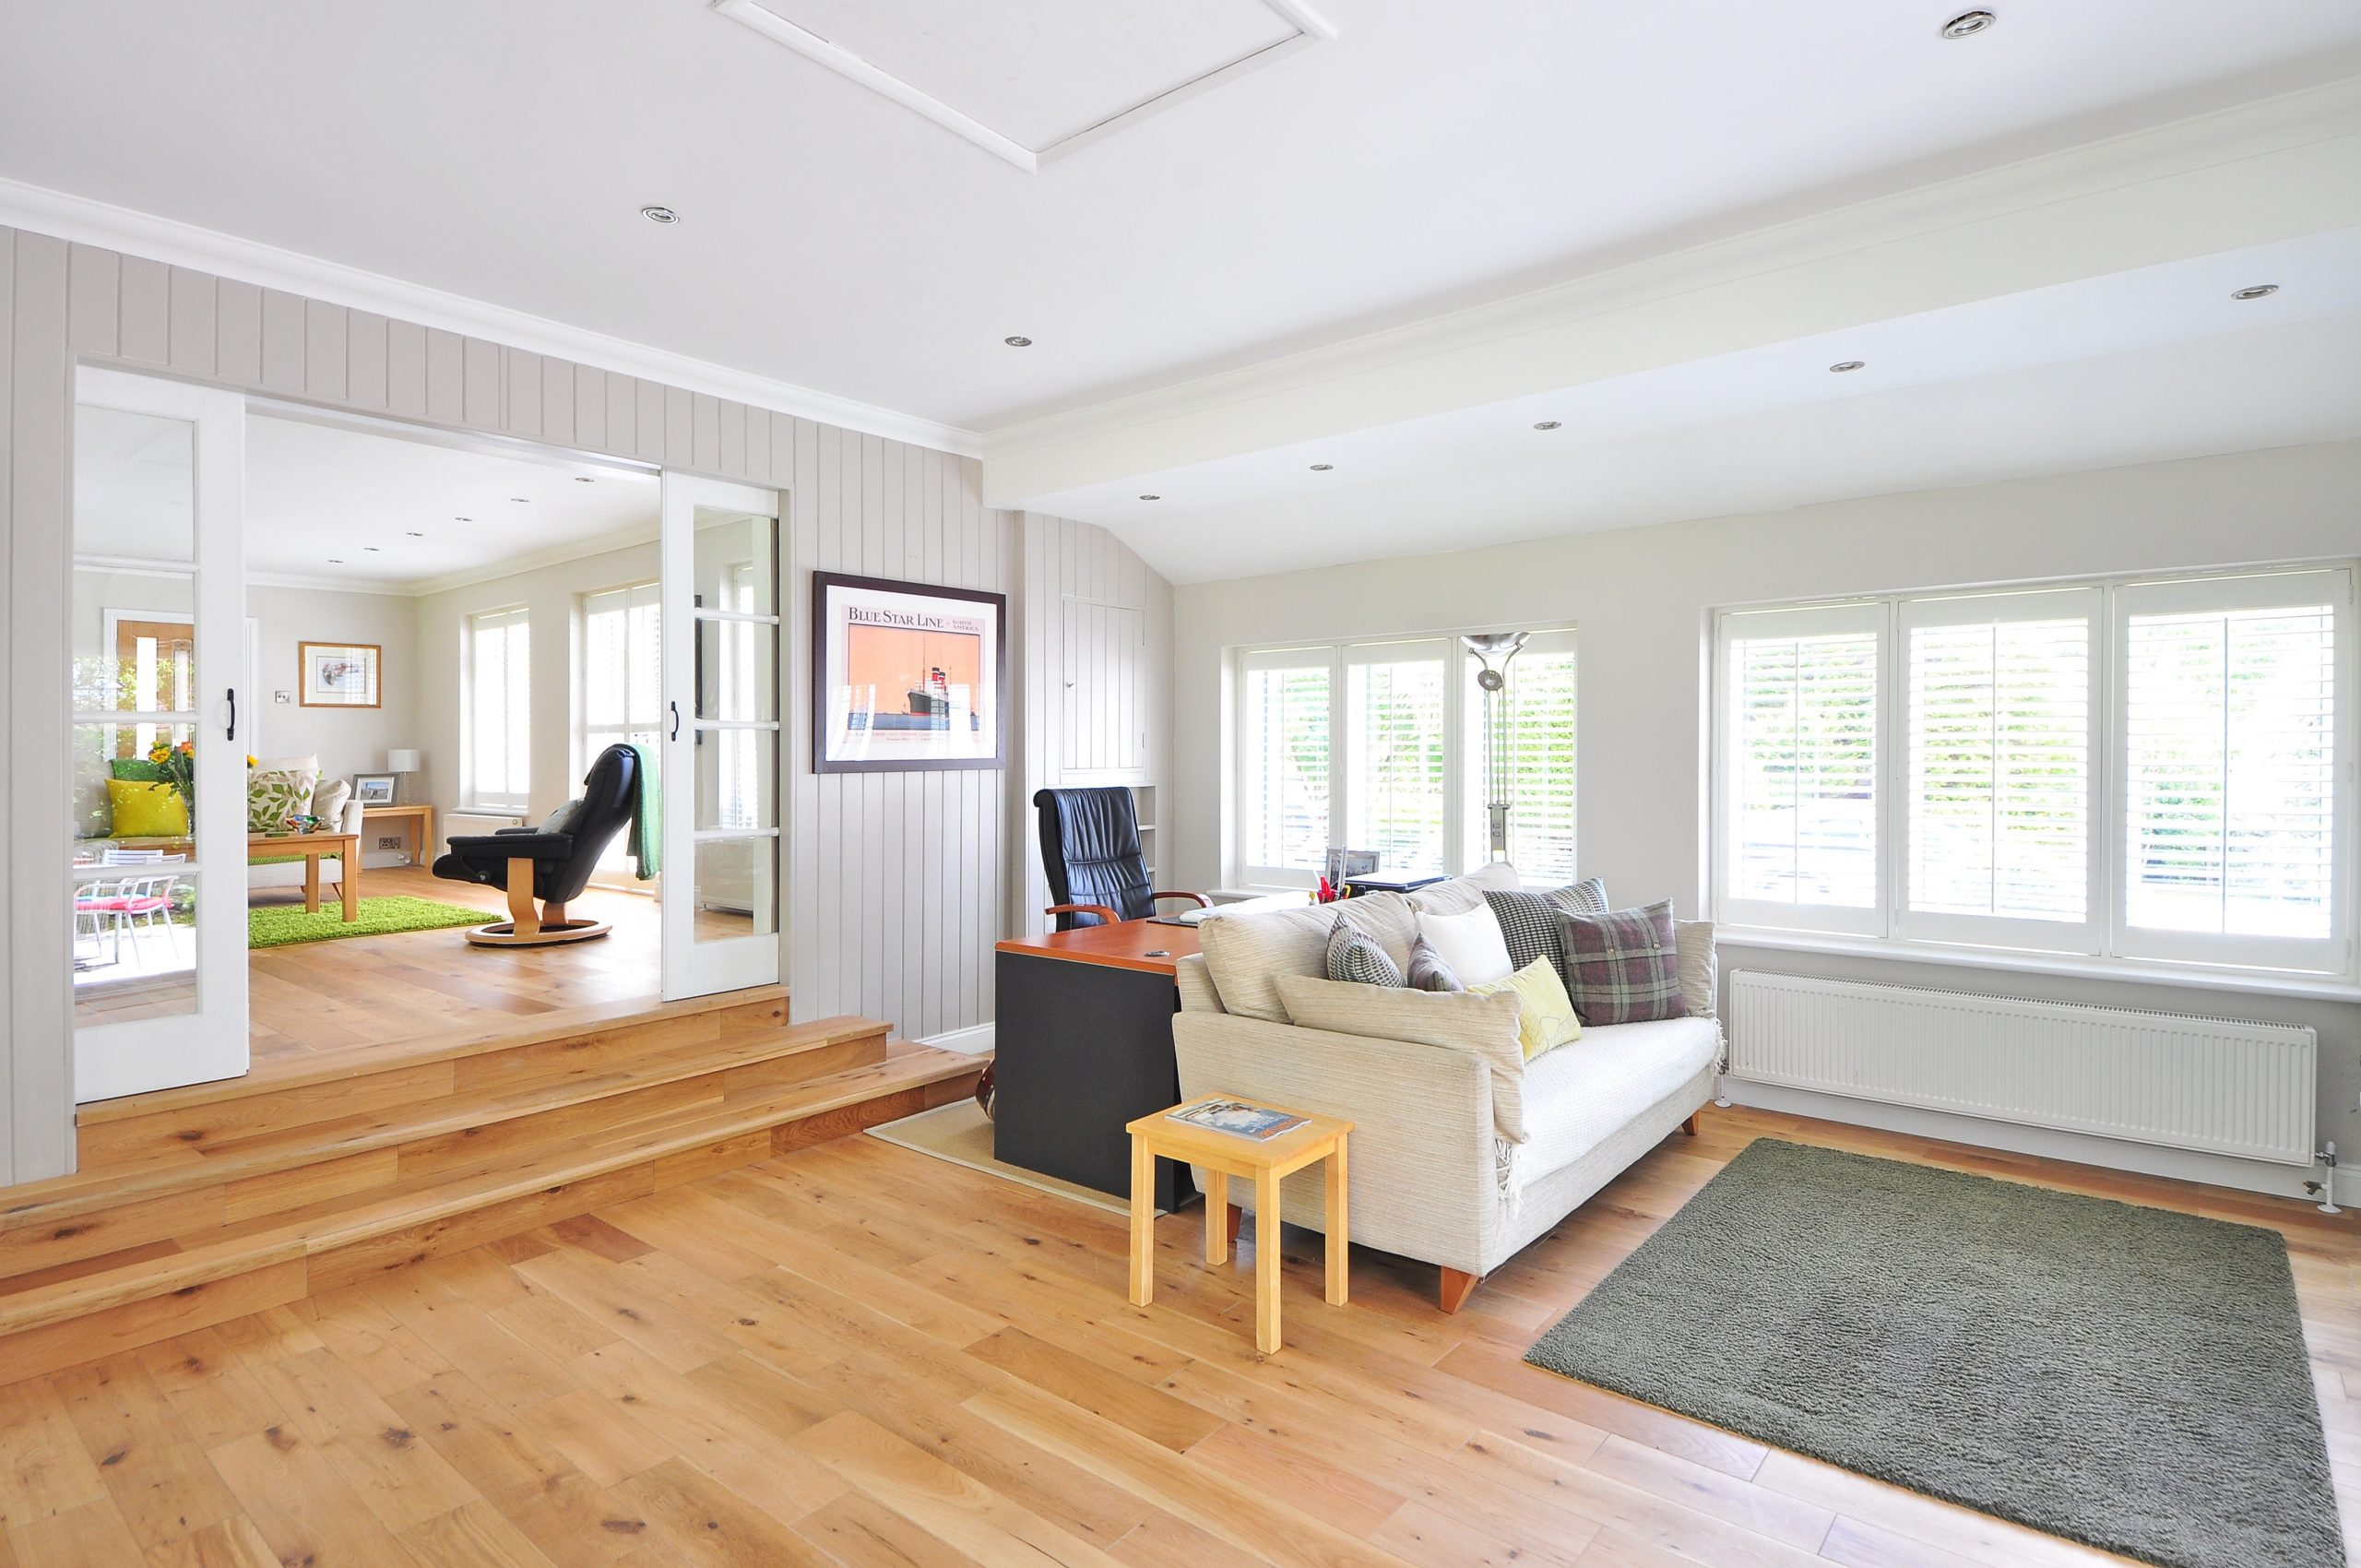 Choosing the right windows for the right room